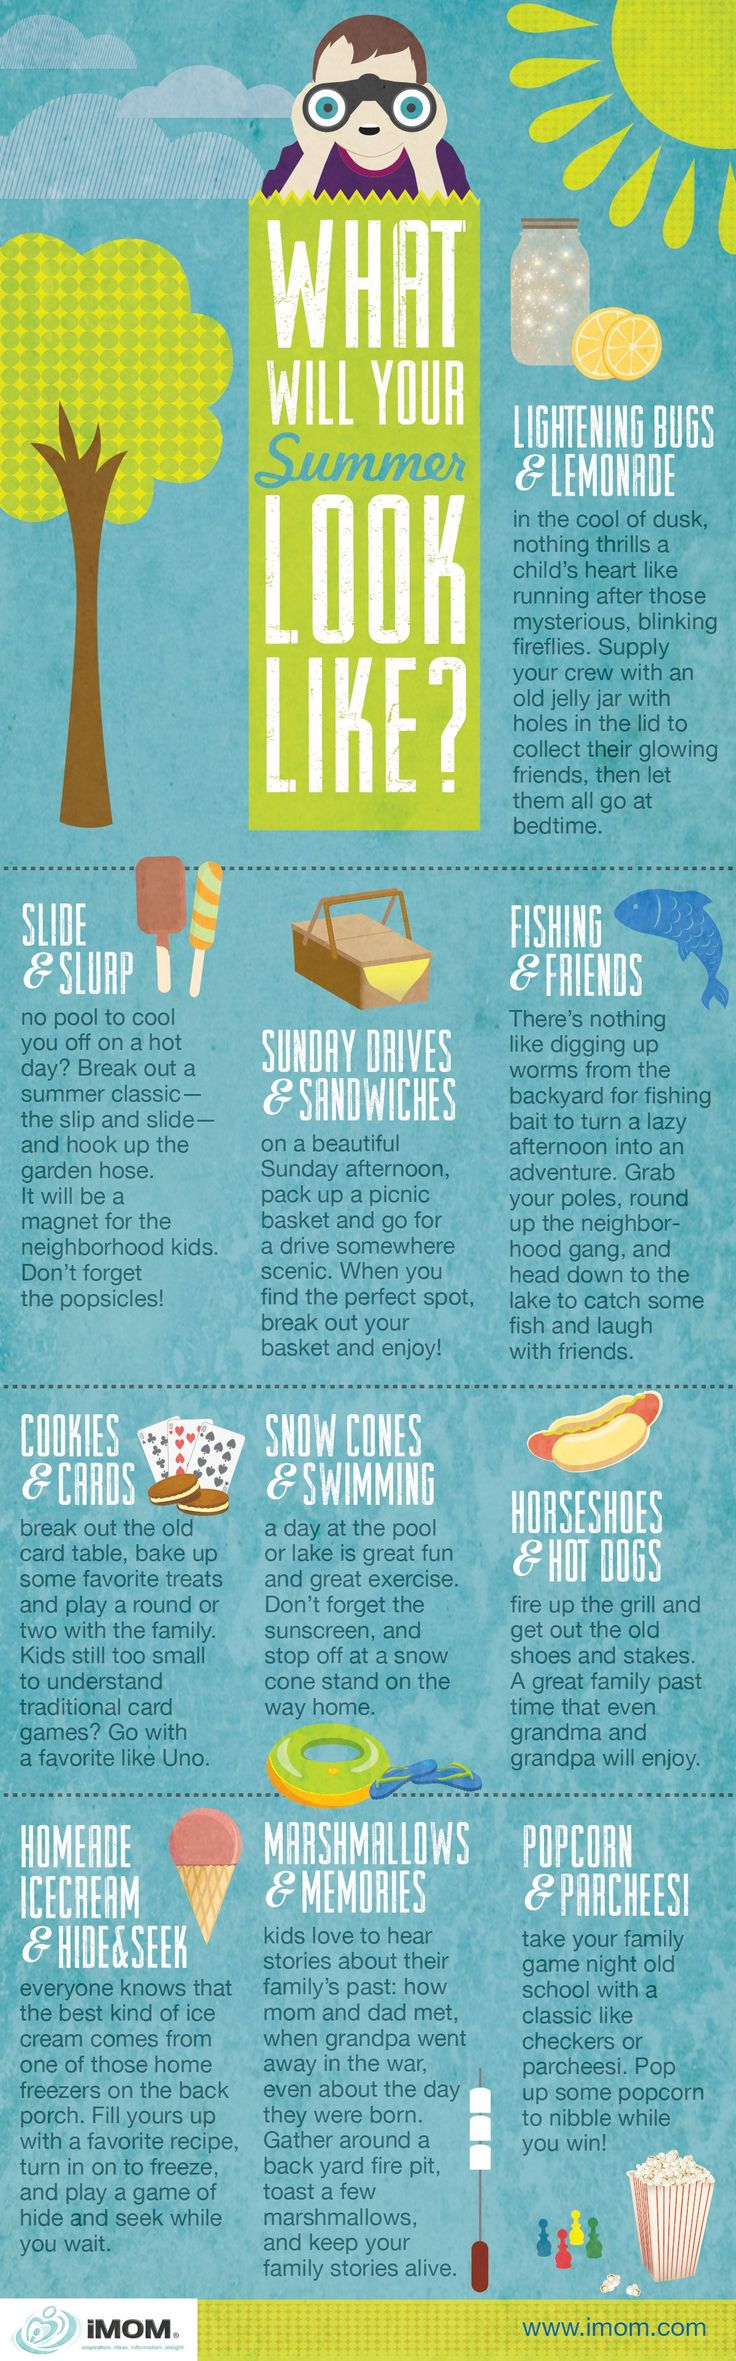 What will your summer look like? #summer #infographic